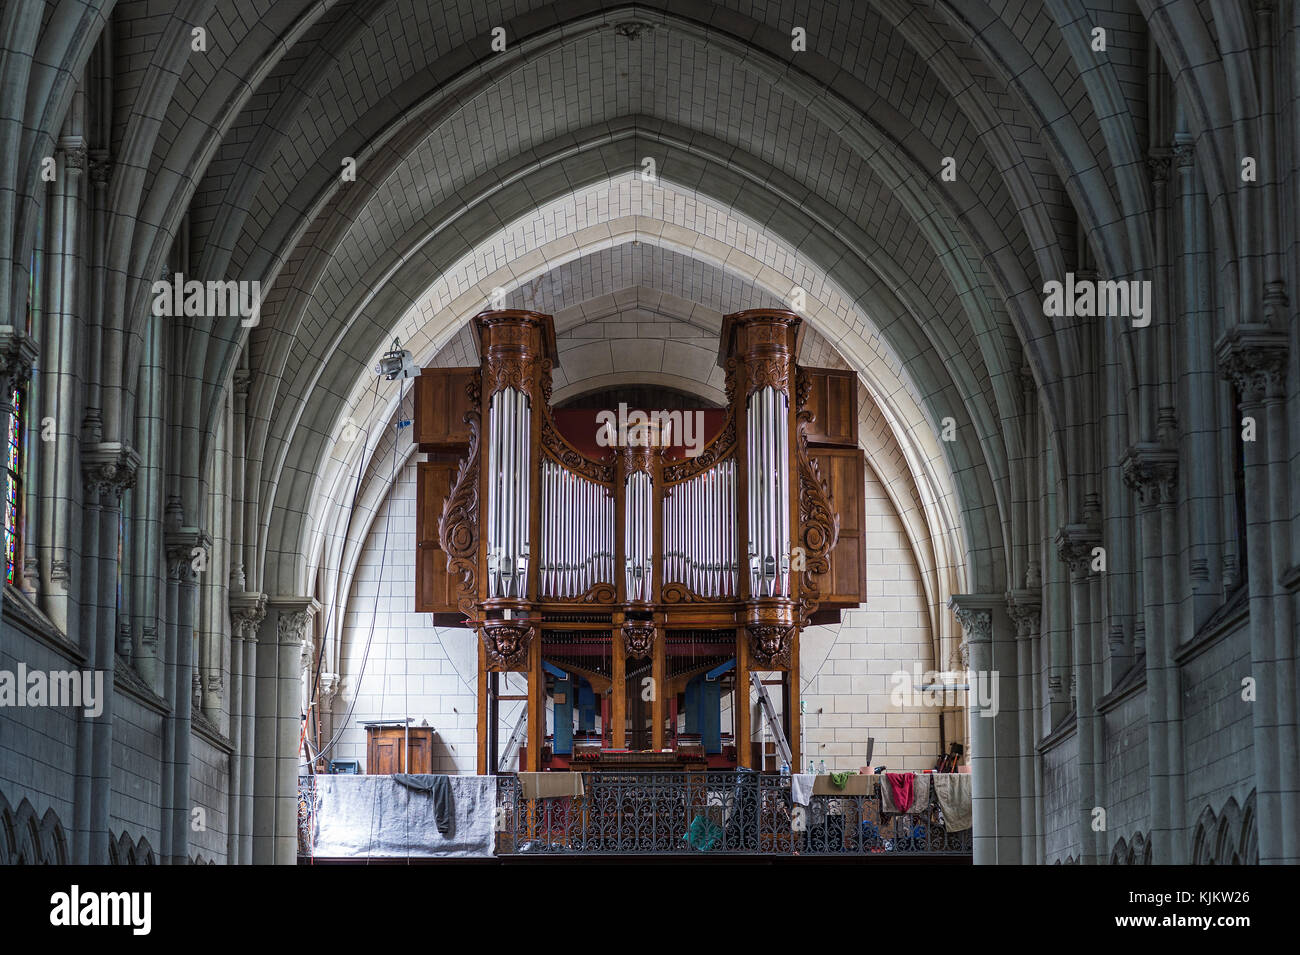 Stained glass in Saint-AndrŽ-de-l'Europe church. Organ.  Paris. France. - Stock Image